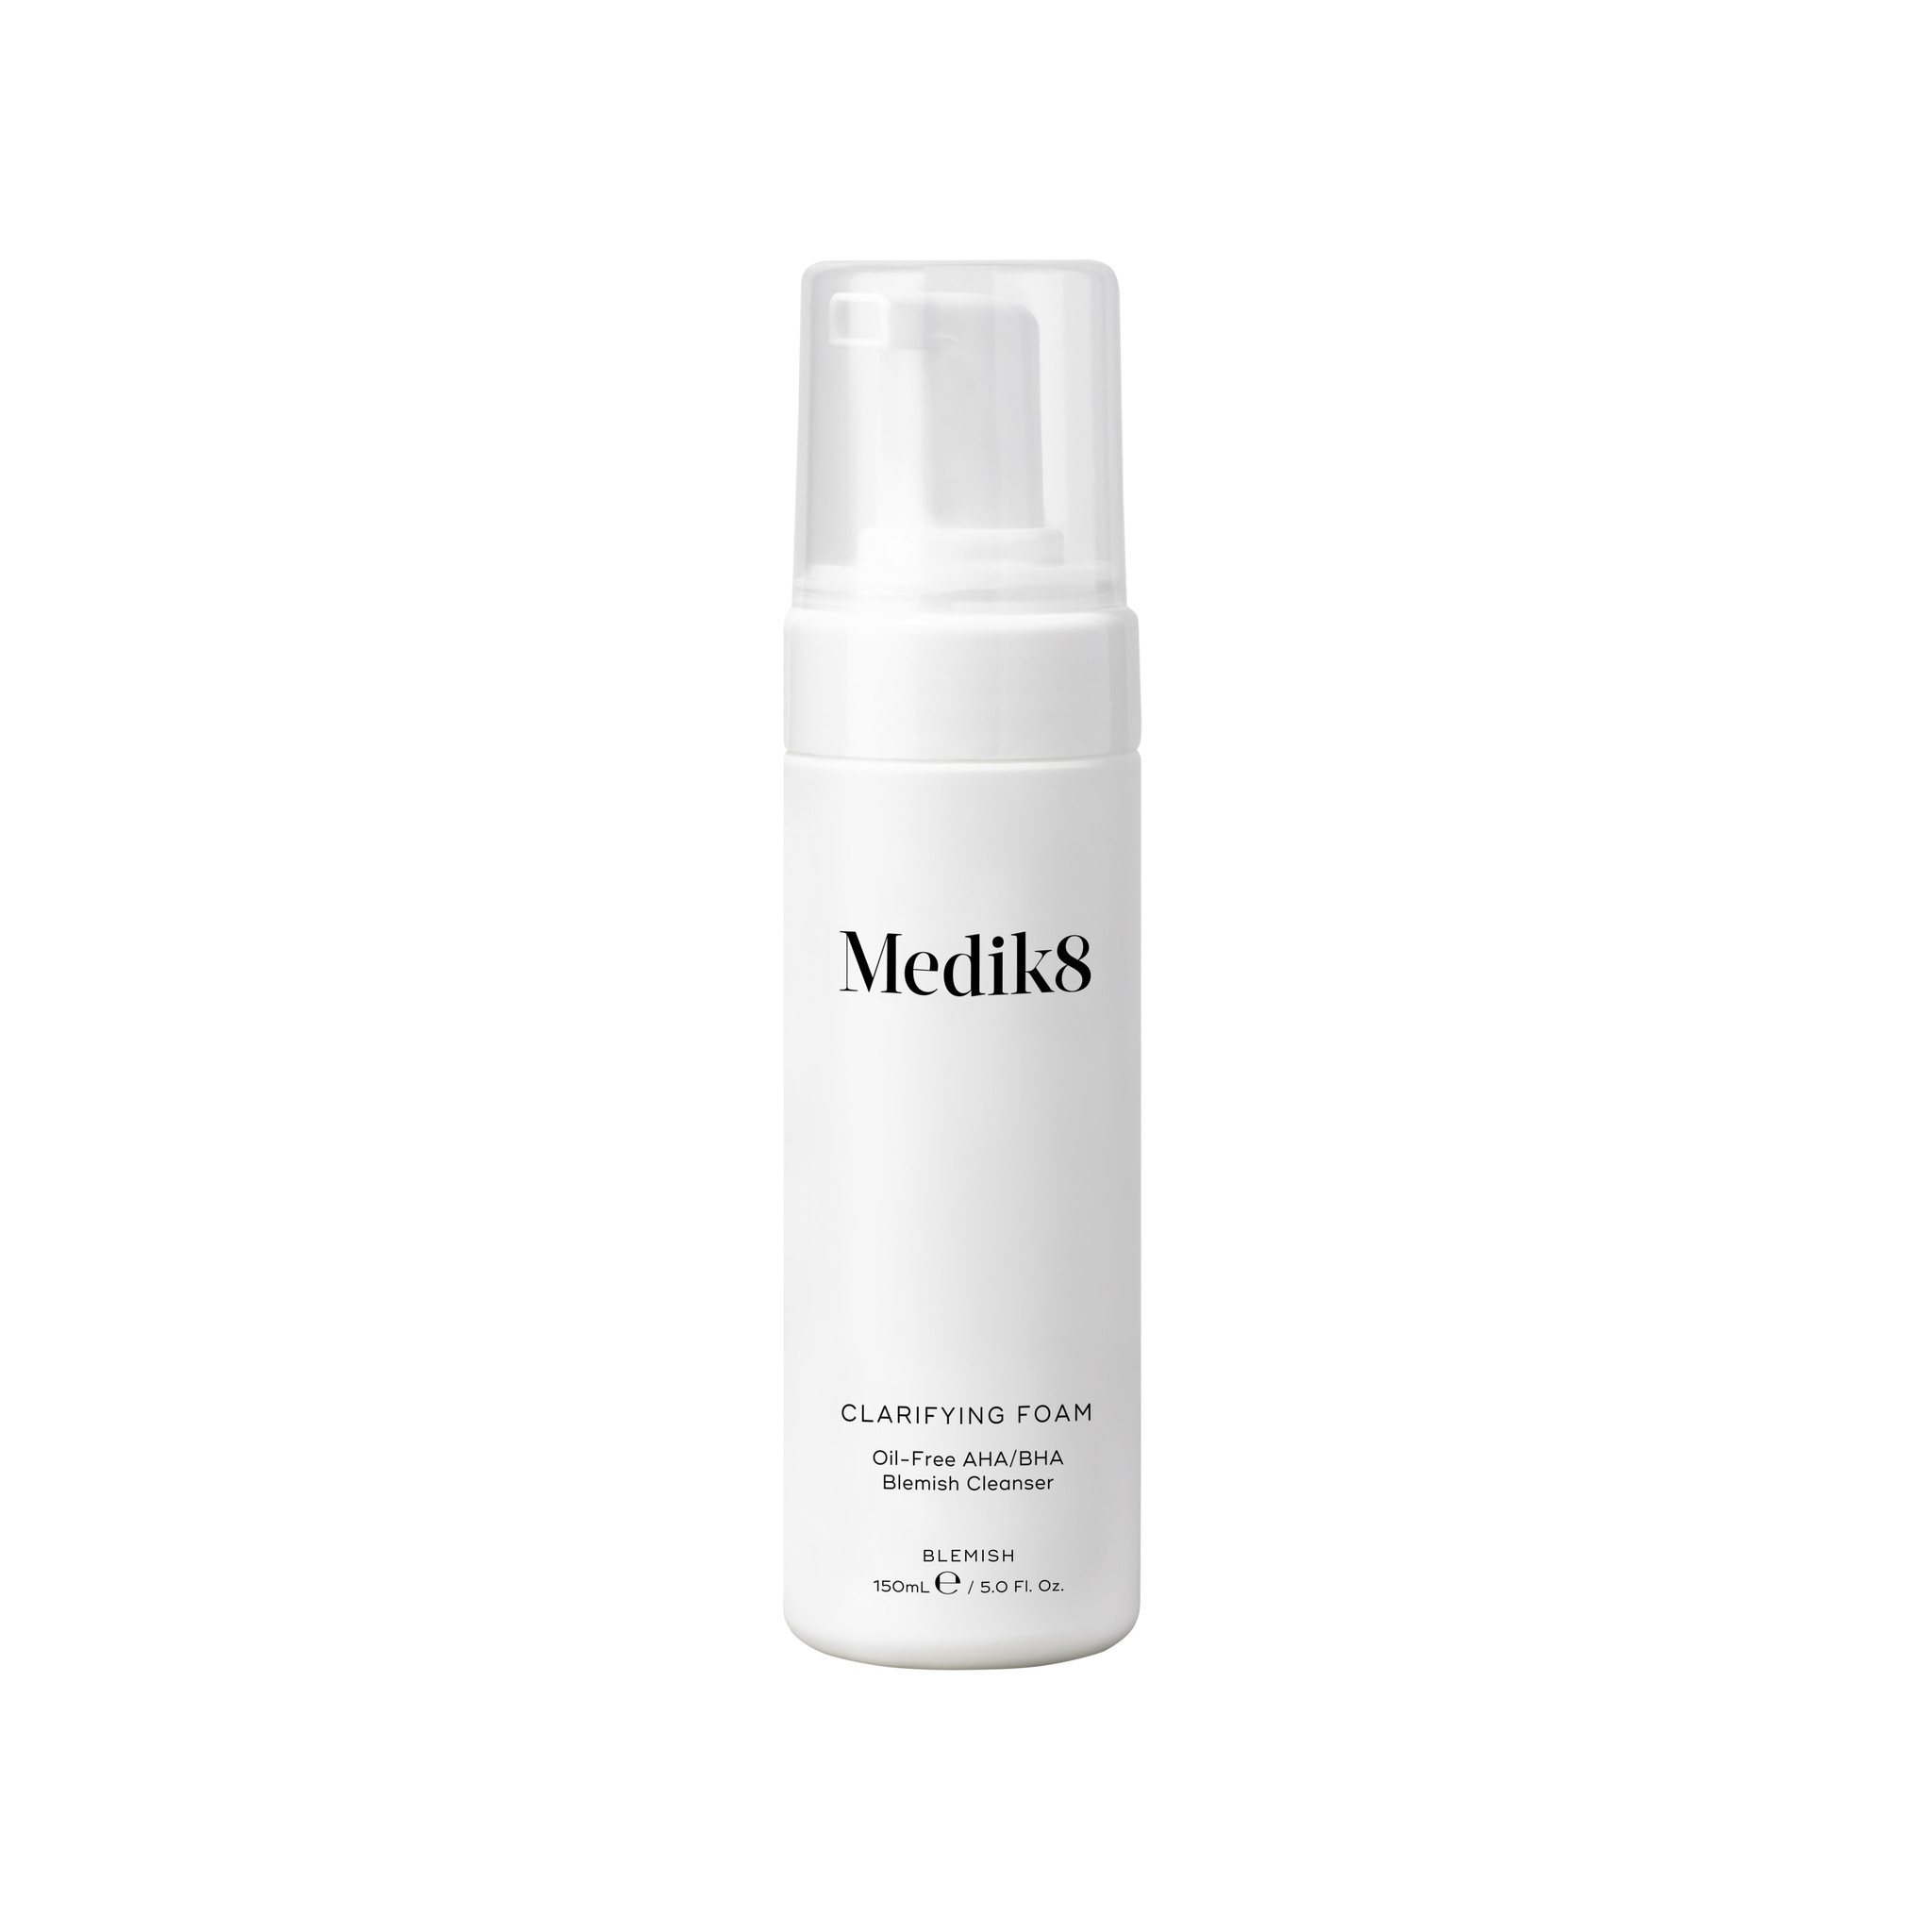 Medik8 Clarifying Foam | Oil-Free AHA/BHA Blemish Cleanser | 150ml